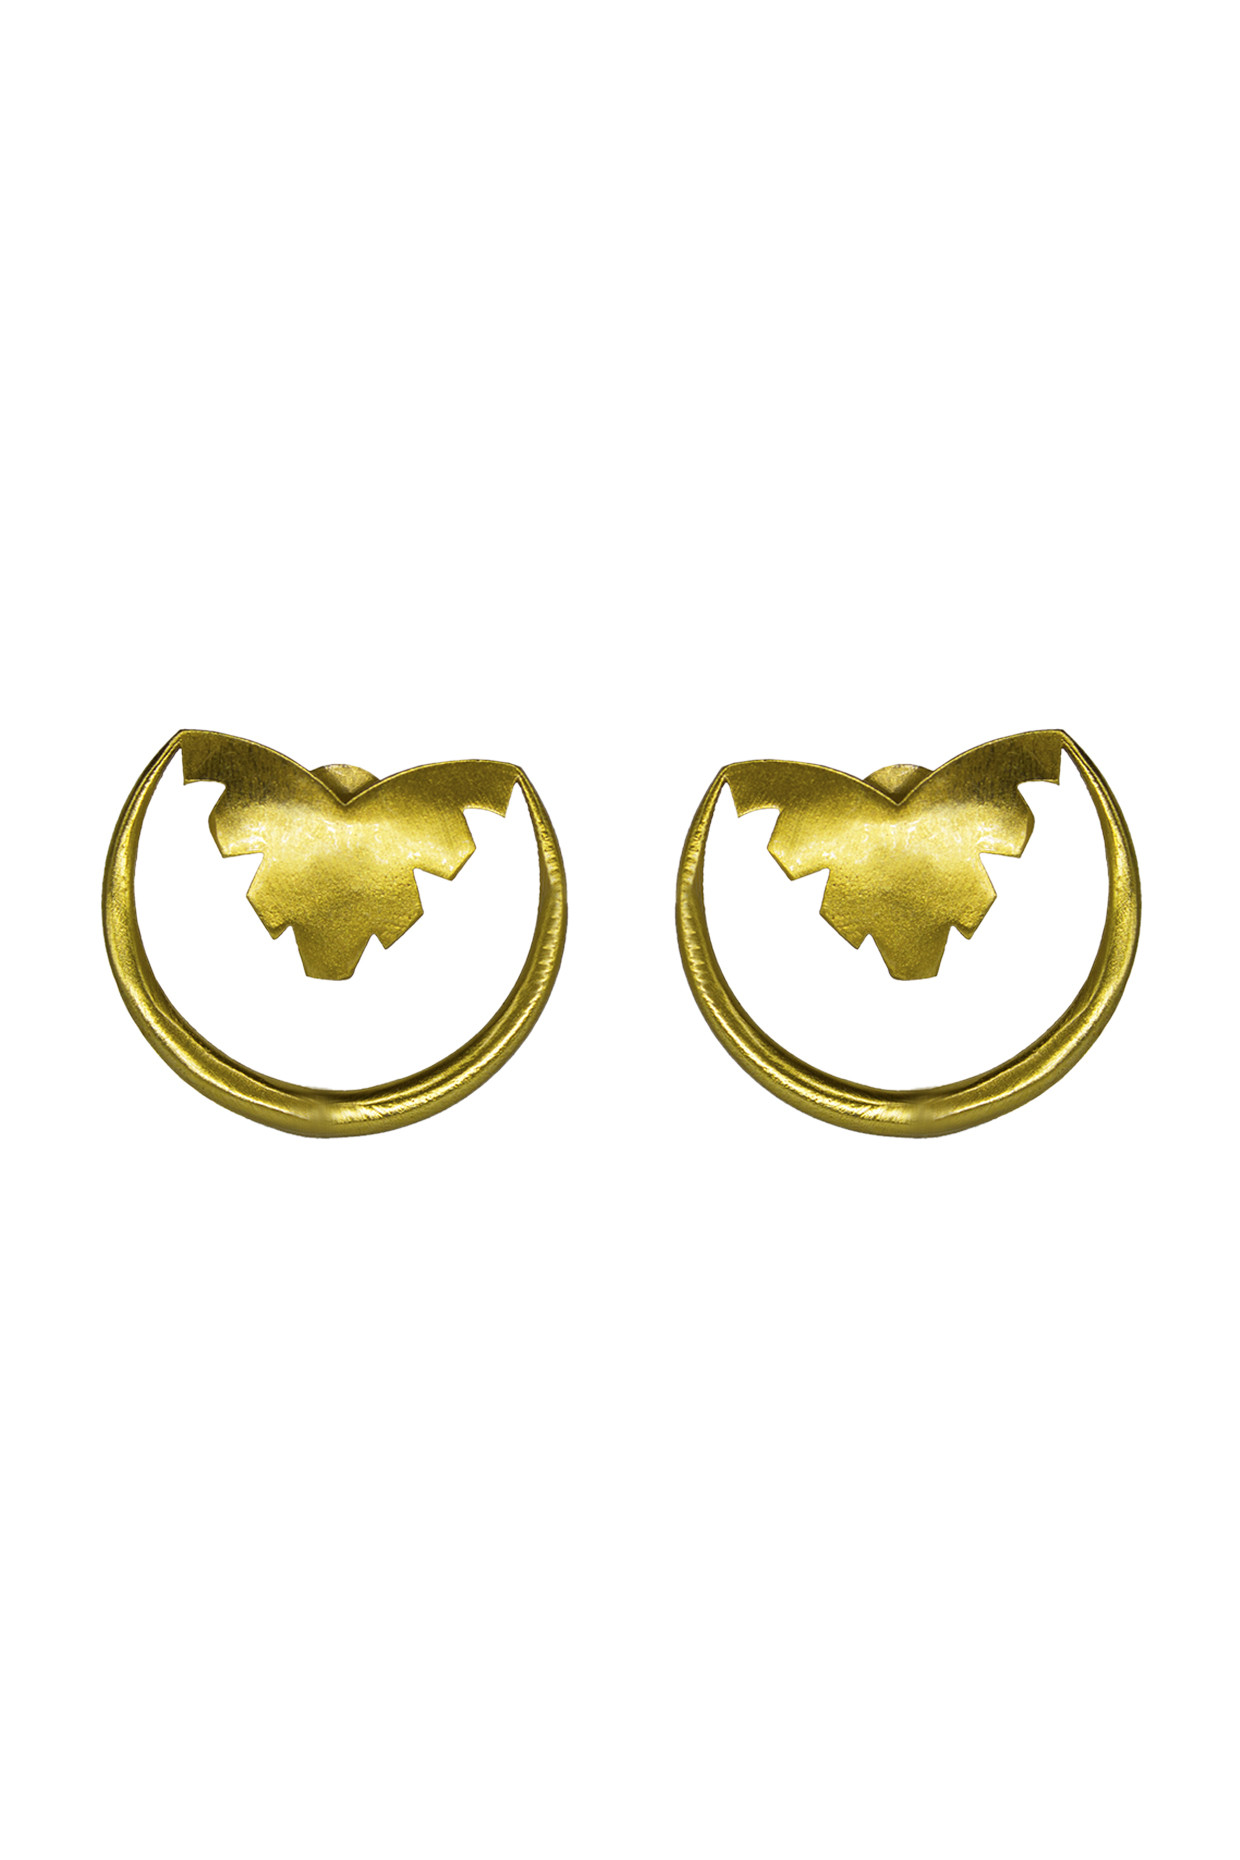 Handcrafted Brass Semi Circle Earrings In Gold by Toorya-Handpicked for You